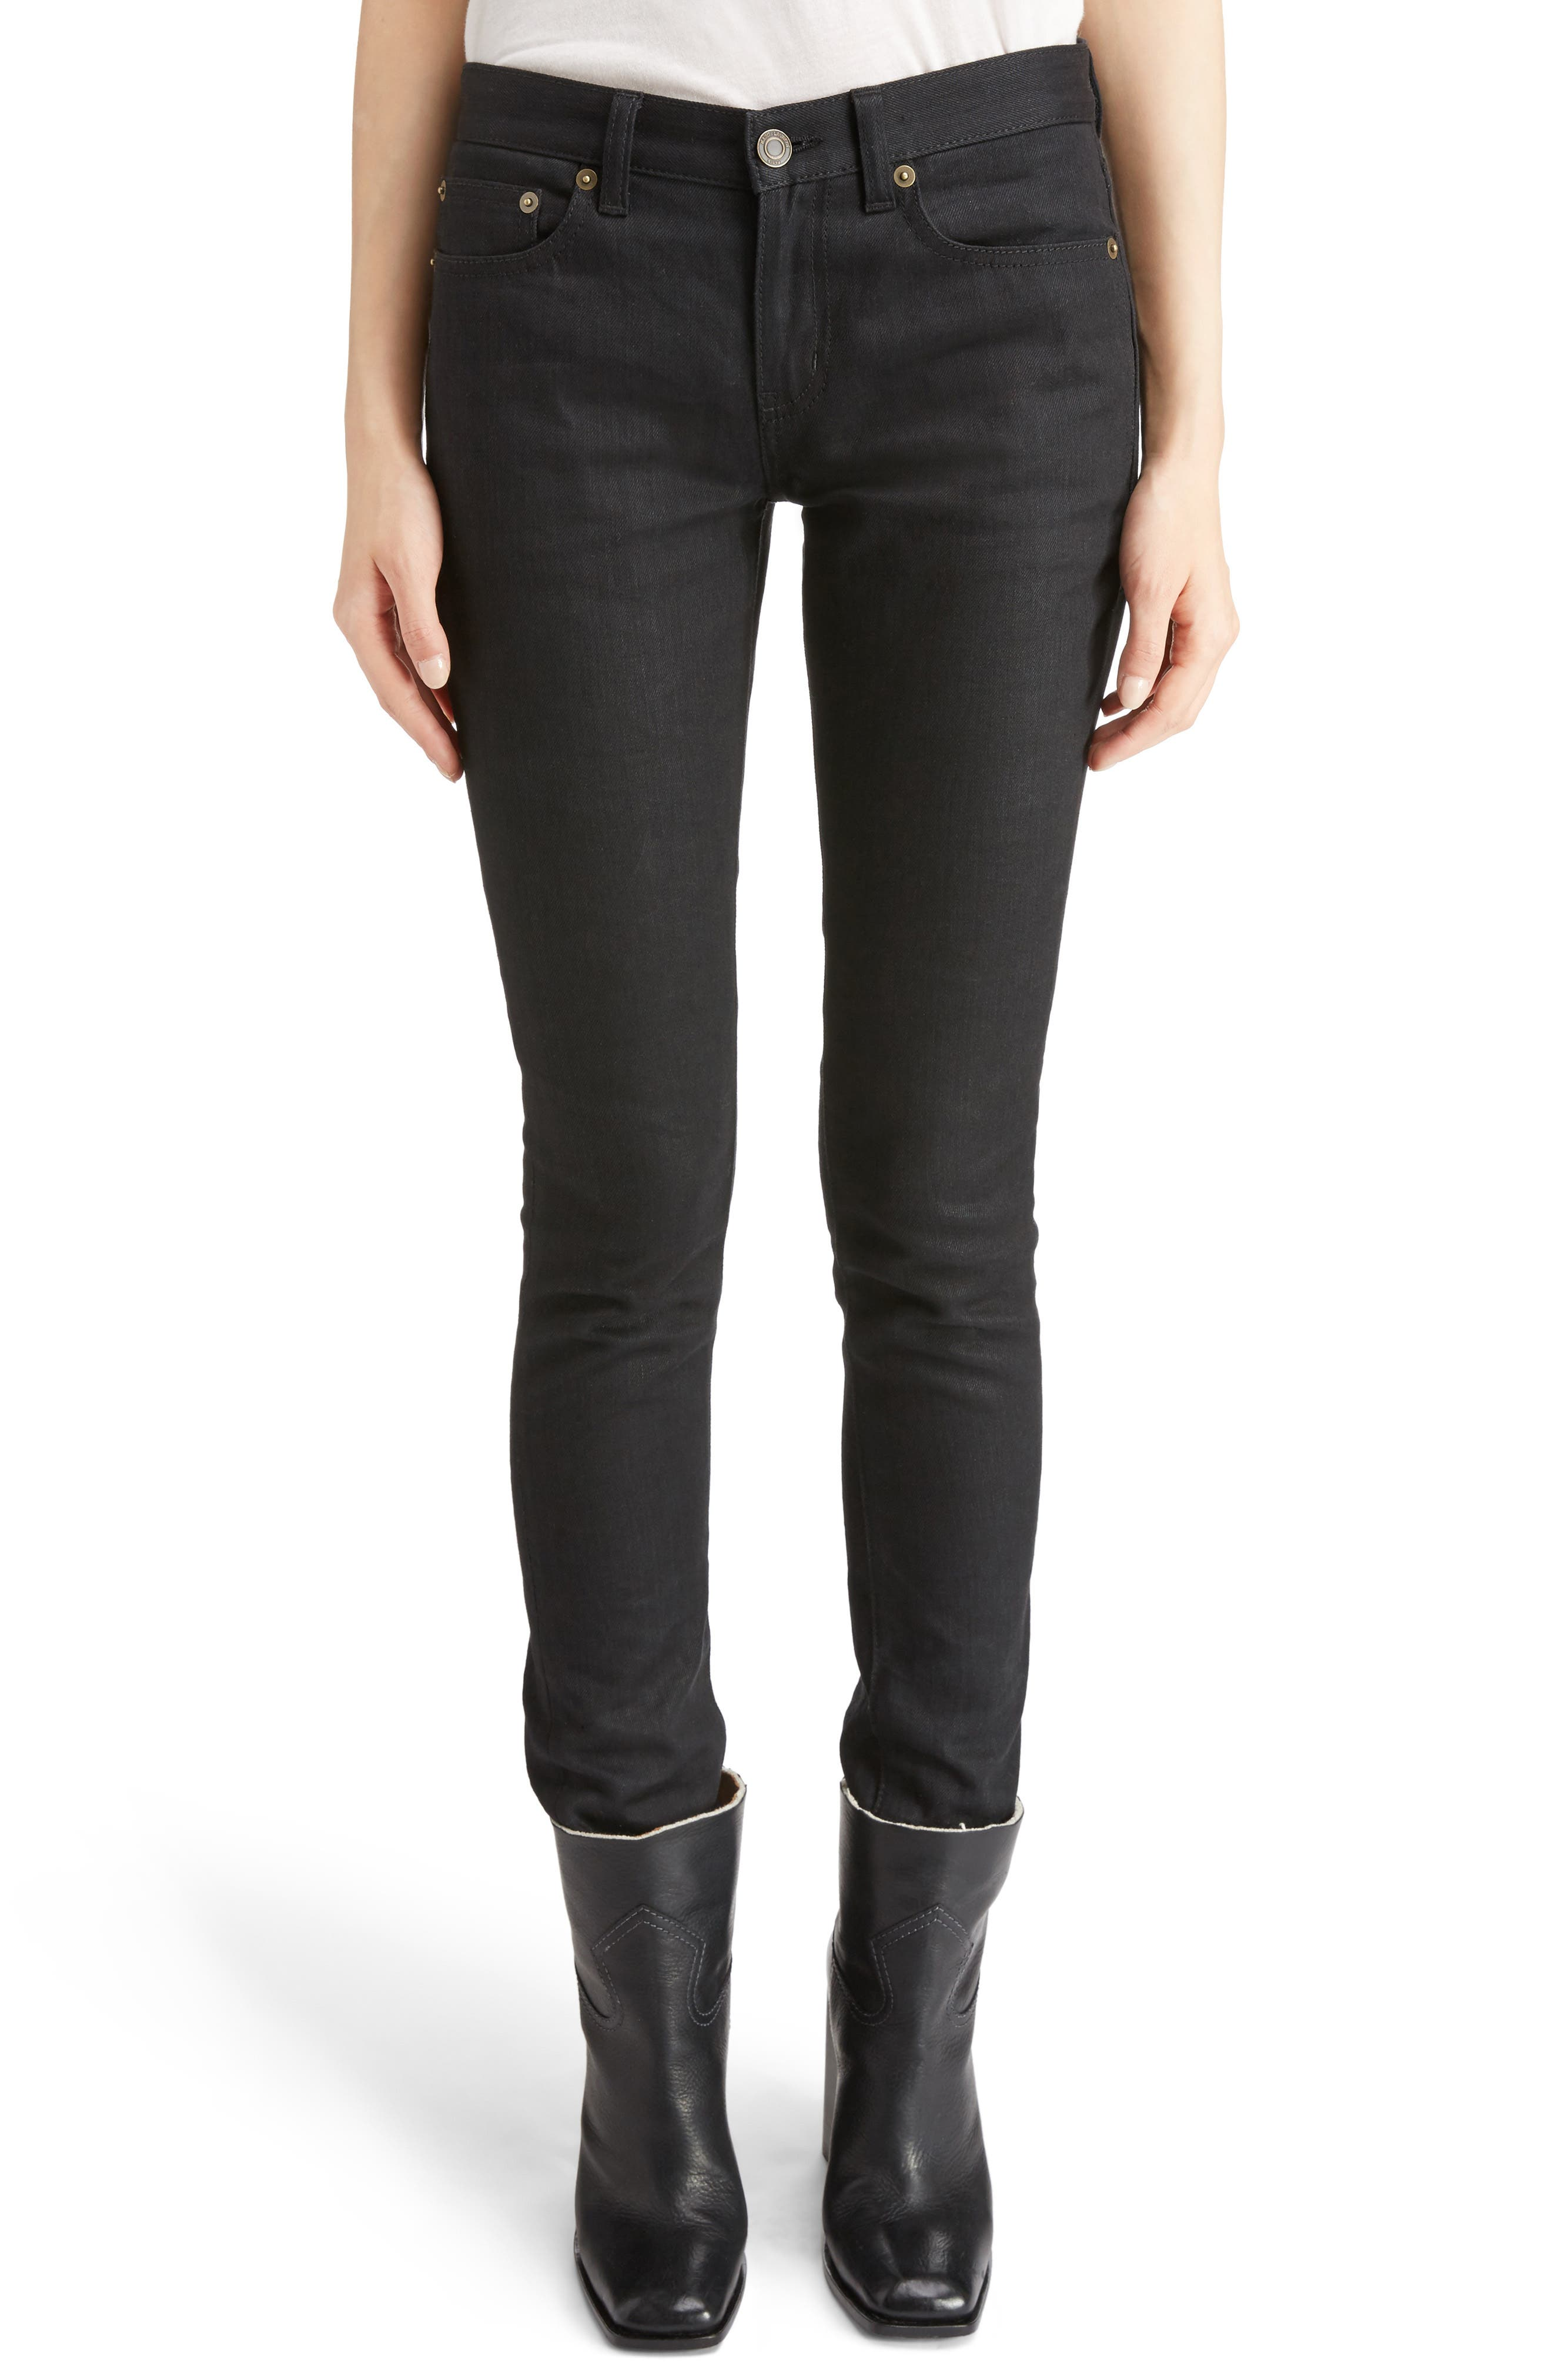 Alternate Image 1 Selected - Saint Laurent High Waist Skinny Jeans